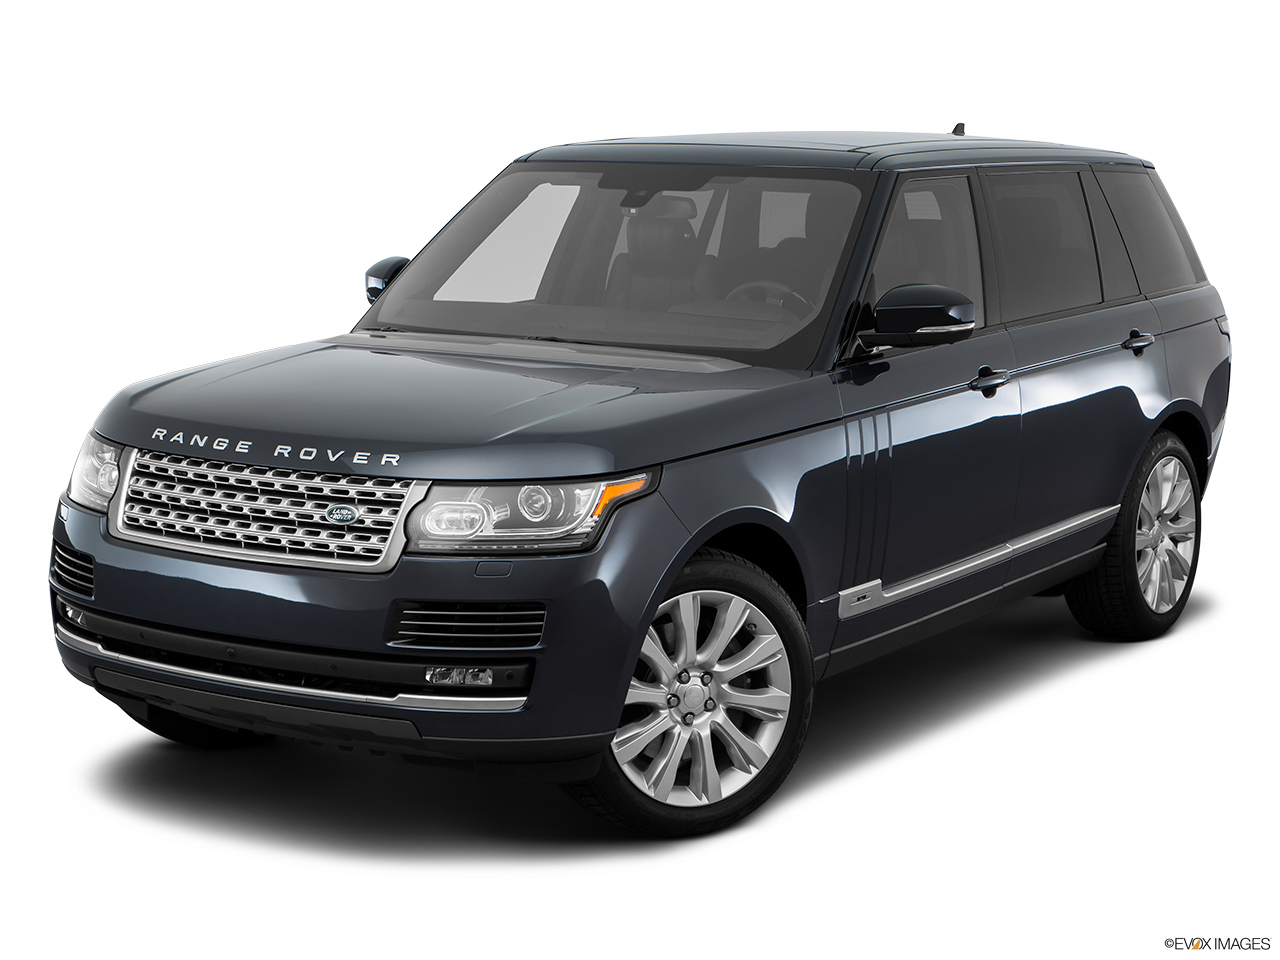 Who Owns Land Rover >> Land Rover Range Rover 2018 5.0L SC Vogue SE LWB 525 PS in Qatar: New Car Prices, Specs, Reviews ...